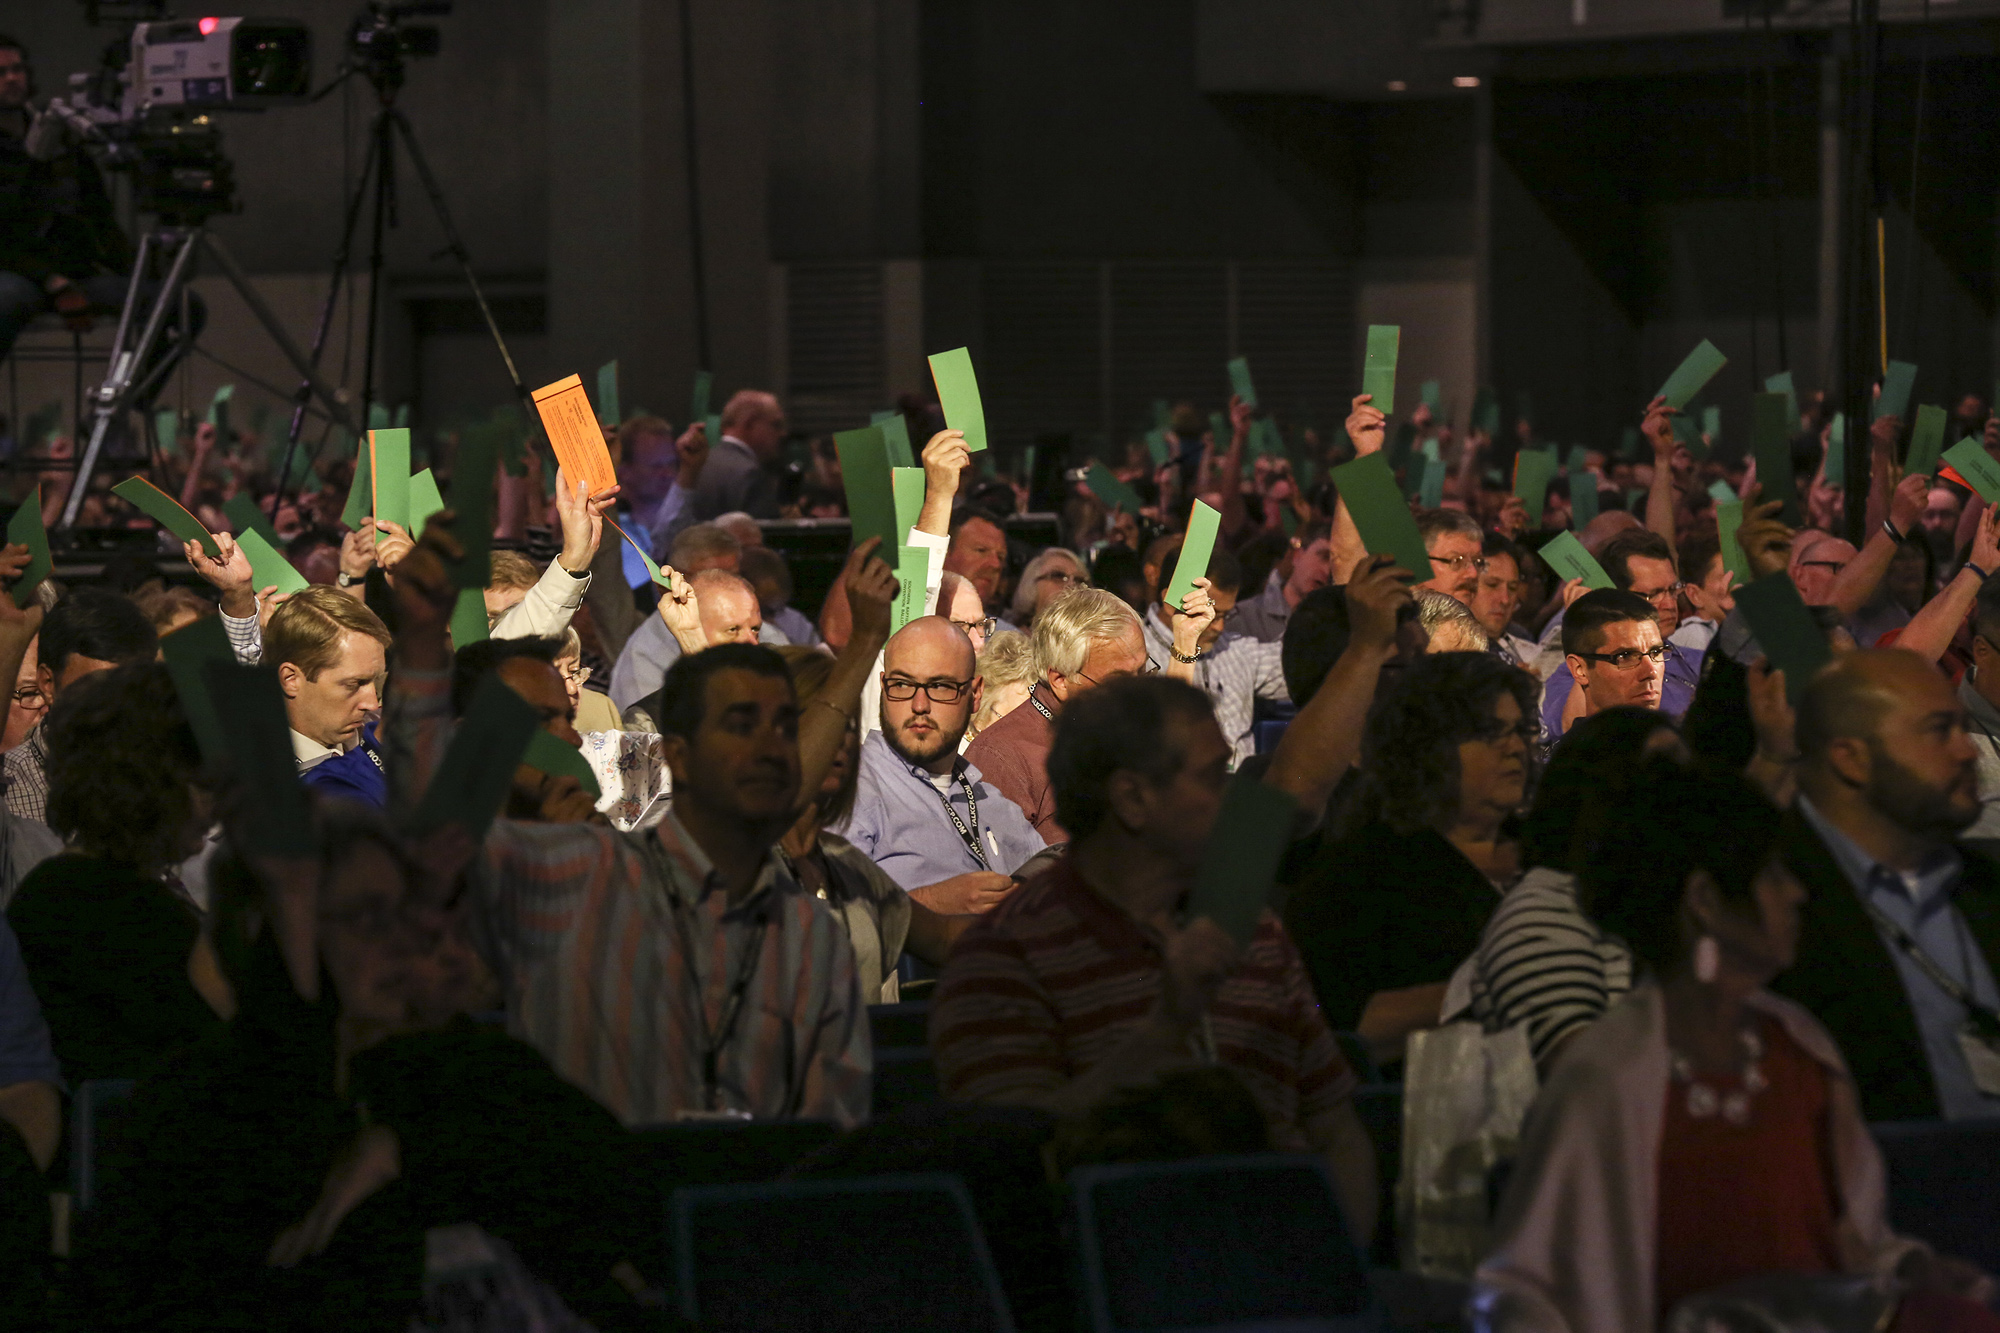 Messengers at the annual meeting of the Southern Baptist Convention cast ballots for a resolution during the afternoon session Tuesday, June 14 in St. Louis.Photo by Chris Carter, Copyright © 2016 Baptist Press, Southern Baptist Convention